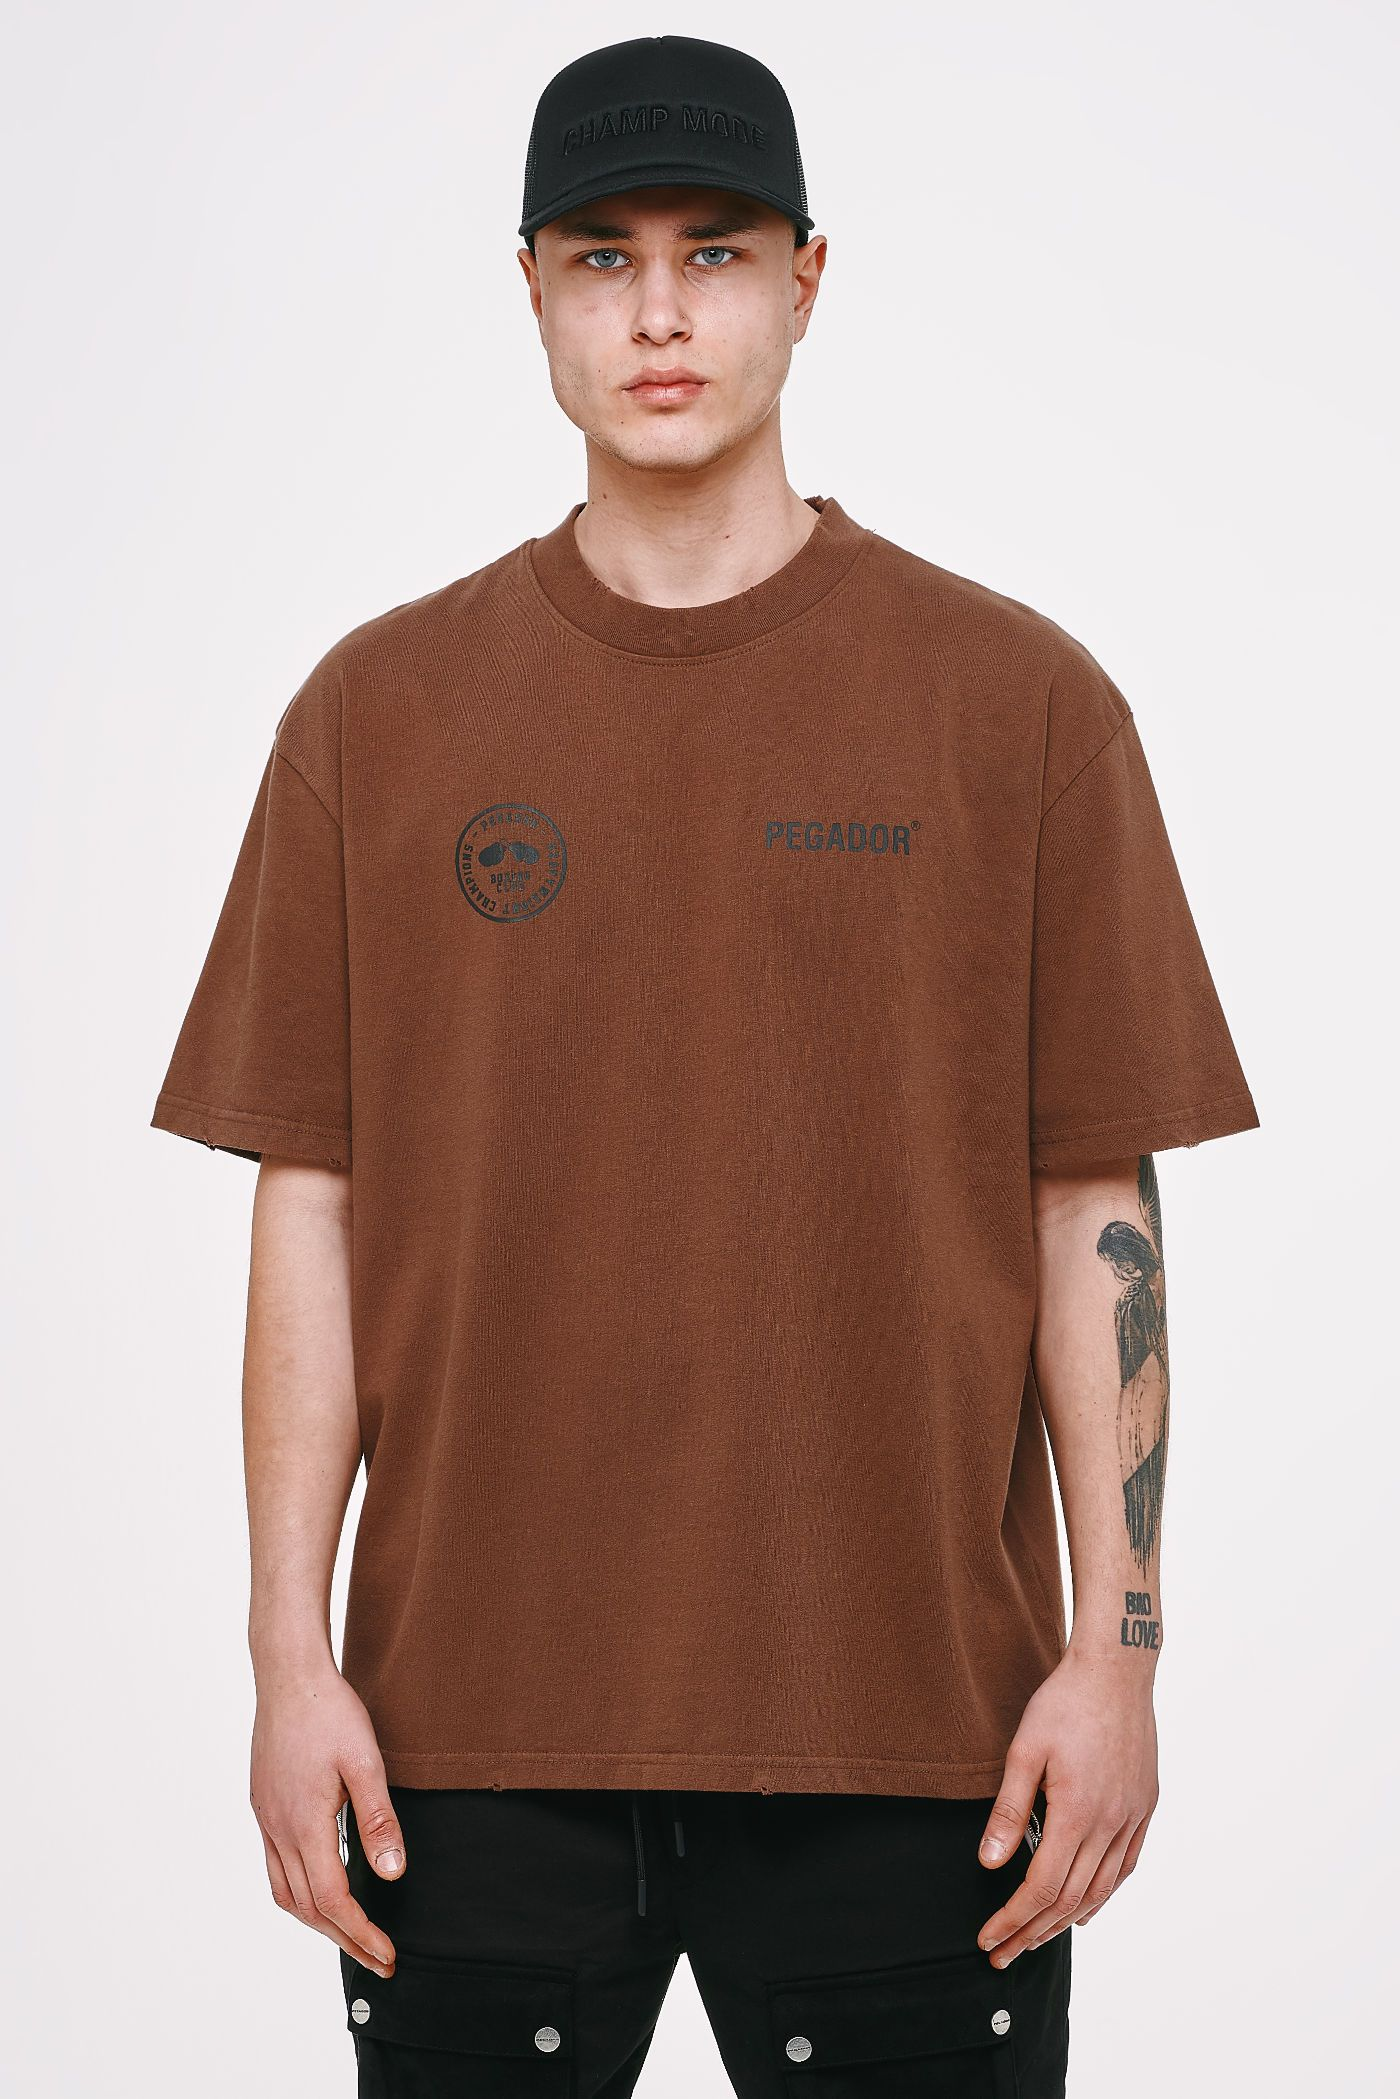 Mike Oversized Tee Vintage Brown T-SHIRT Heavyweight Champions